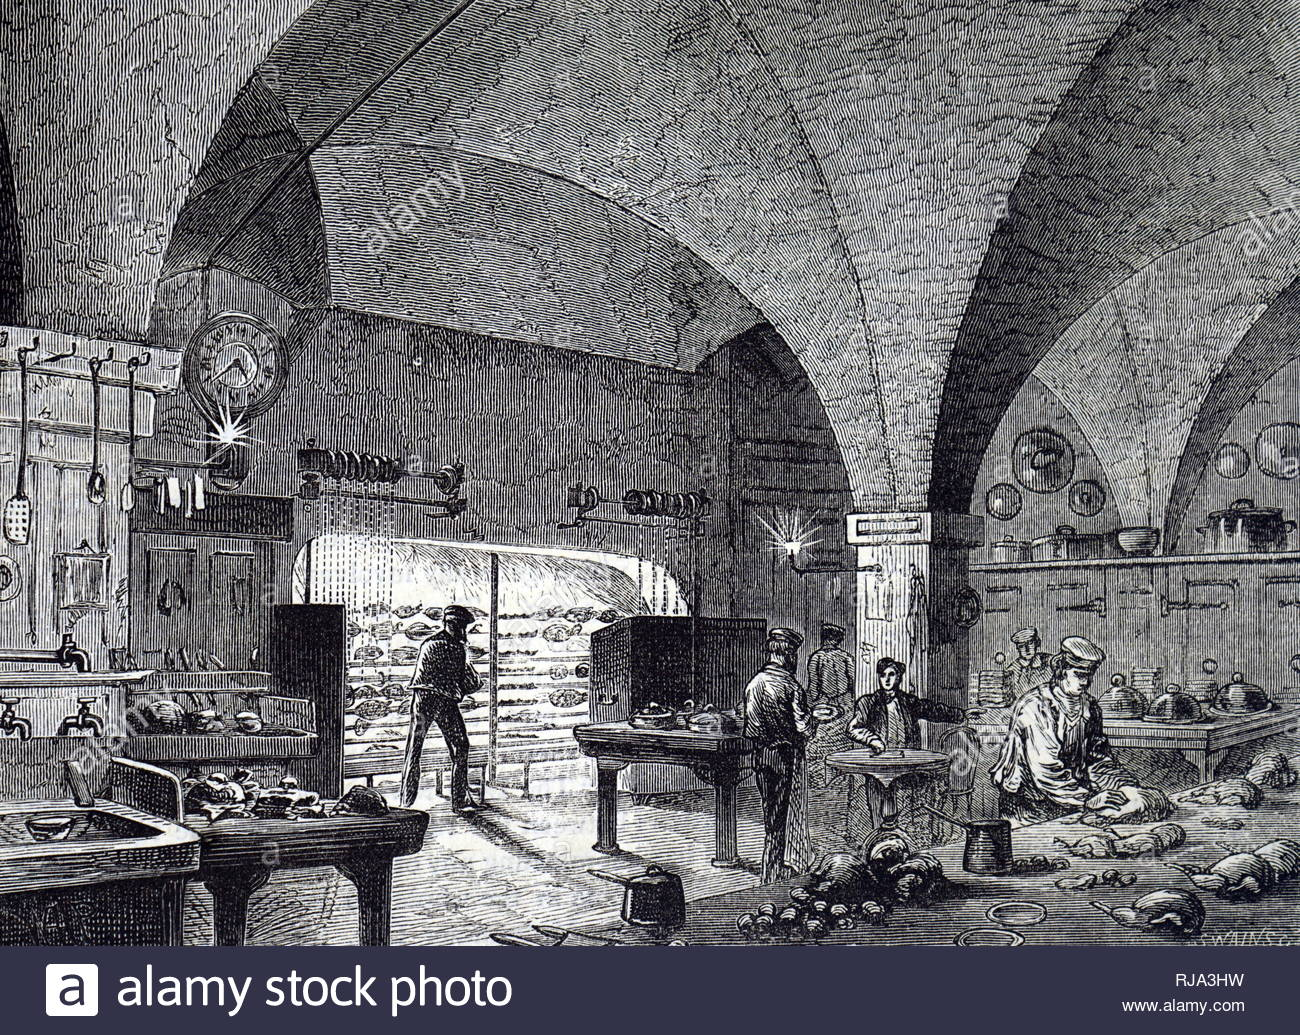 Engraving depicting the kitchen at the Mansion House, London, the official residence of the Mayor of London. Dated 19th century - Stock Image